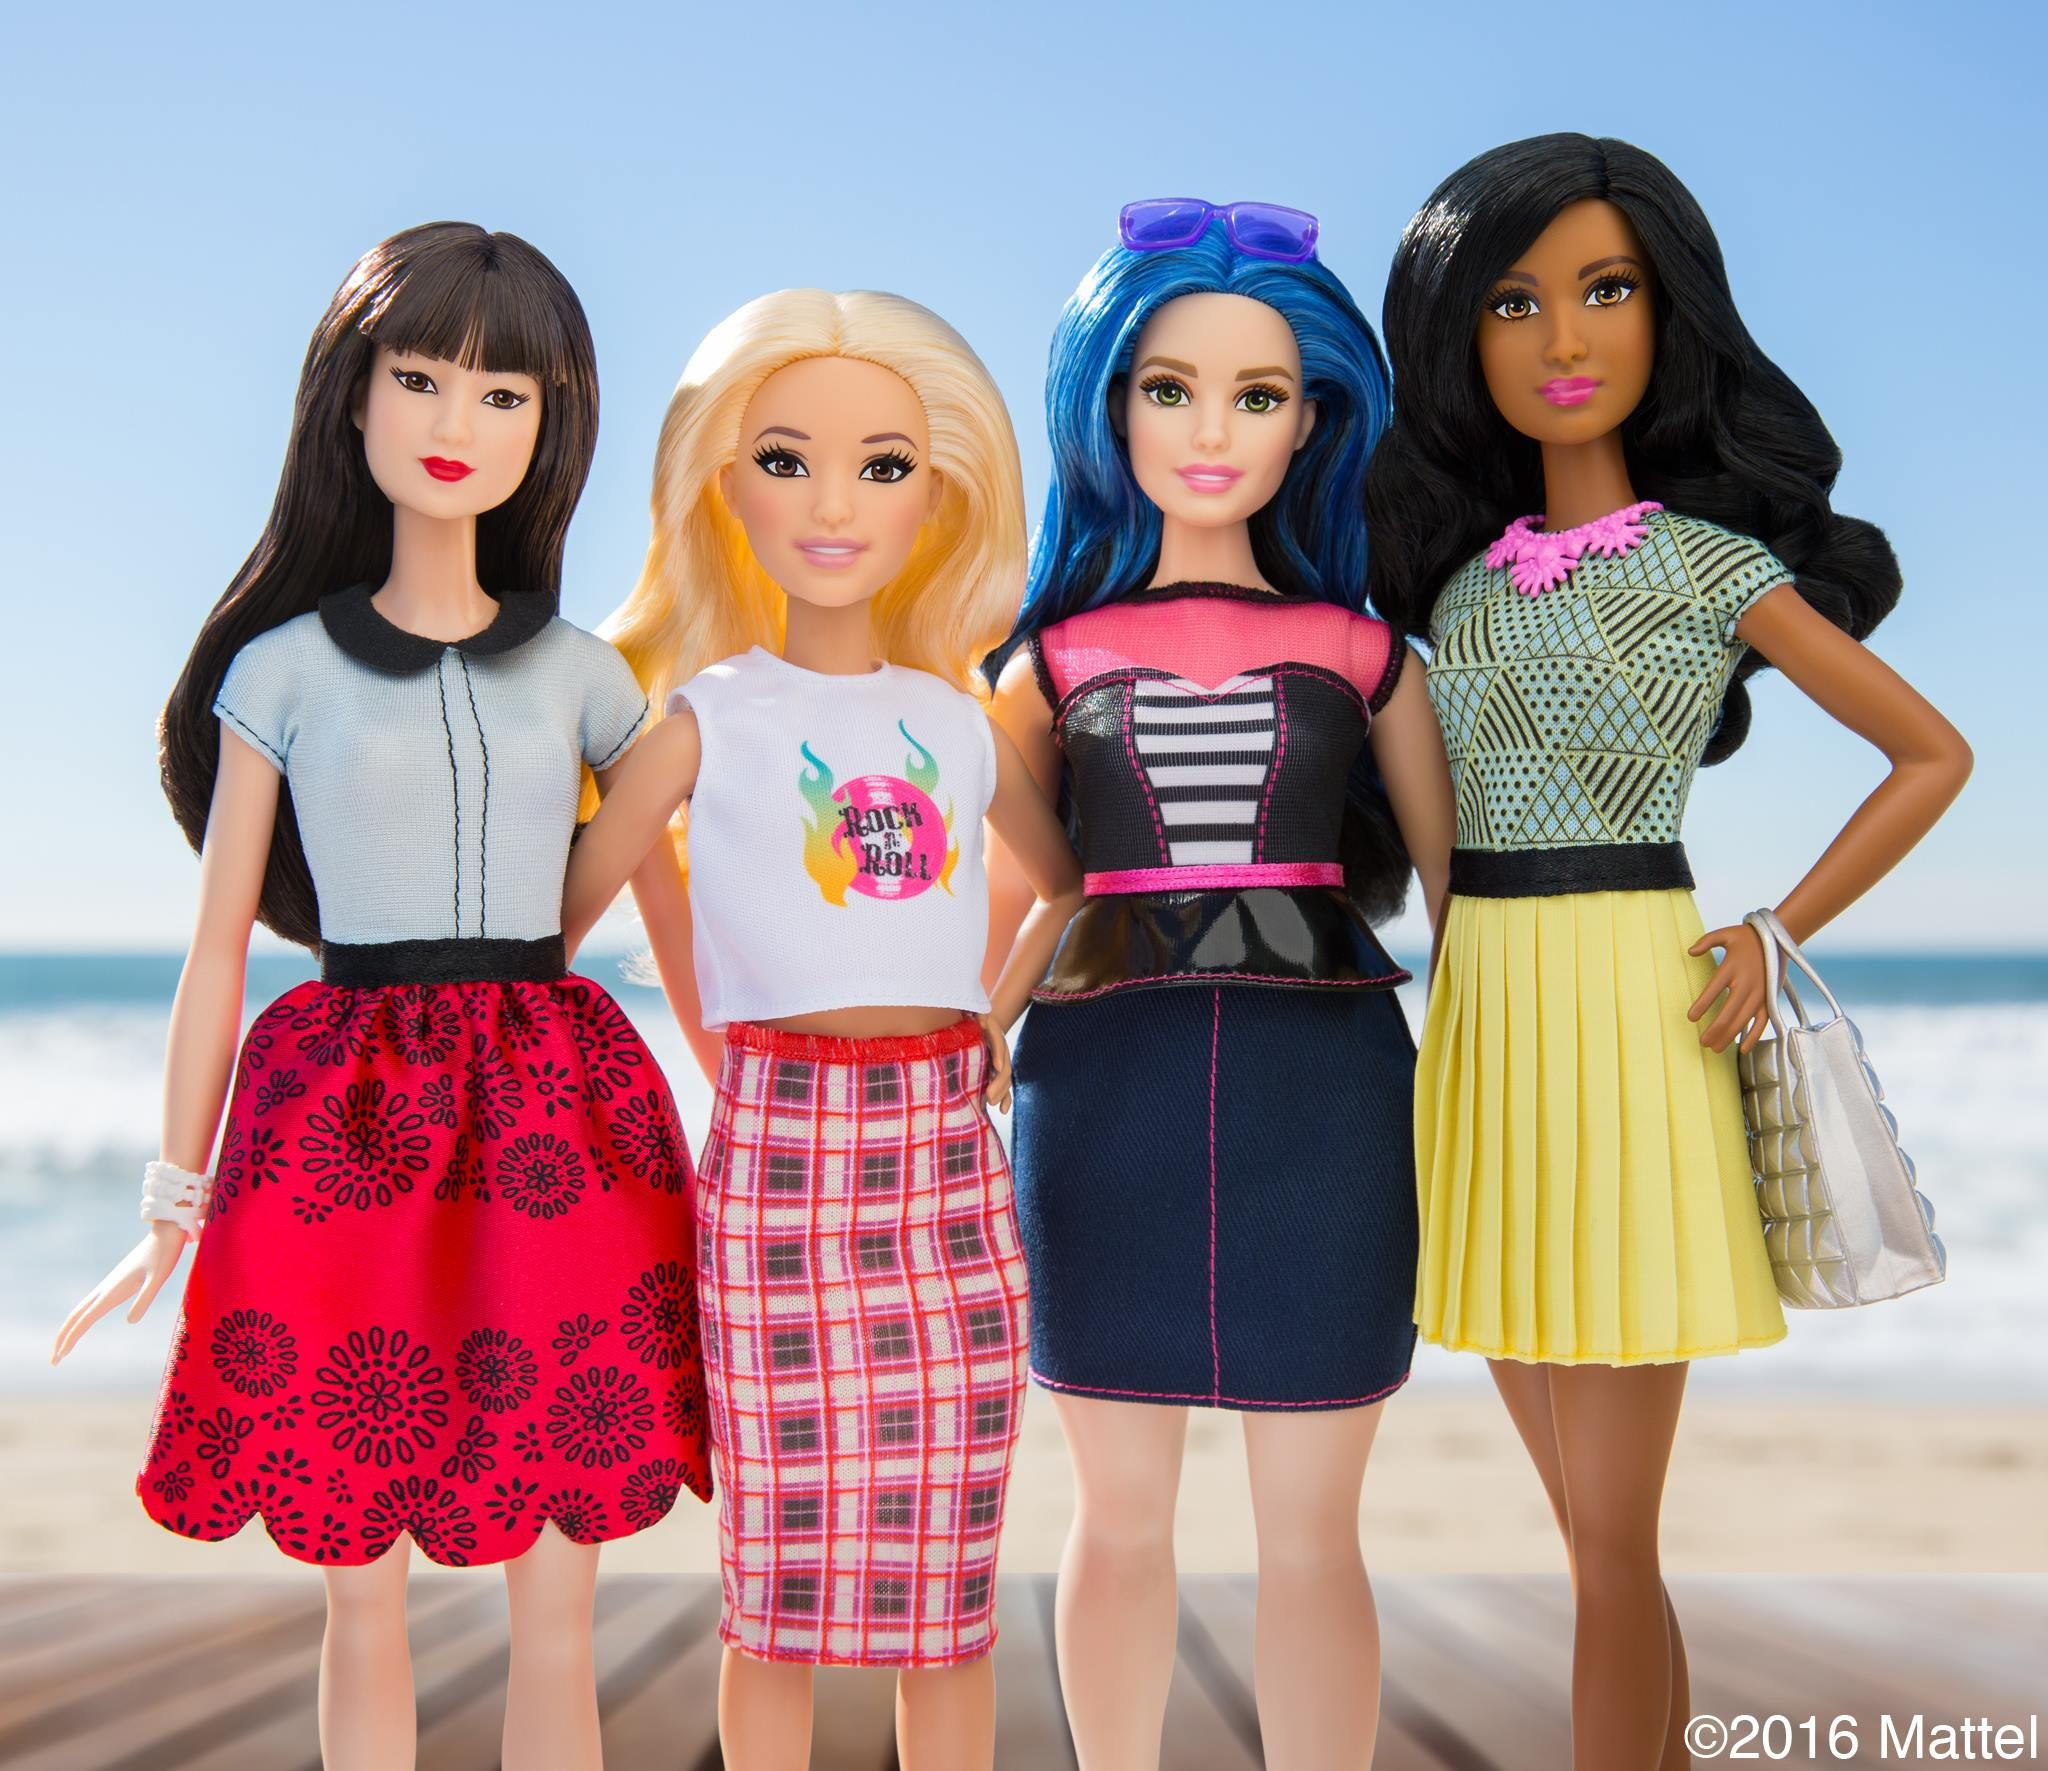 These new barbie dolls which look like real women have taken the toy world bystorm